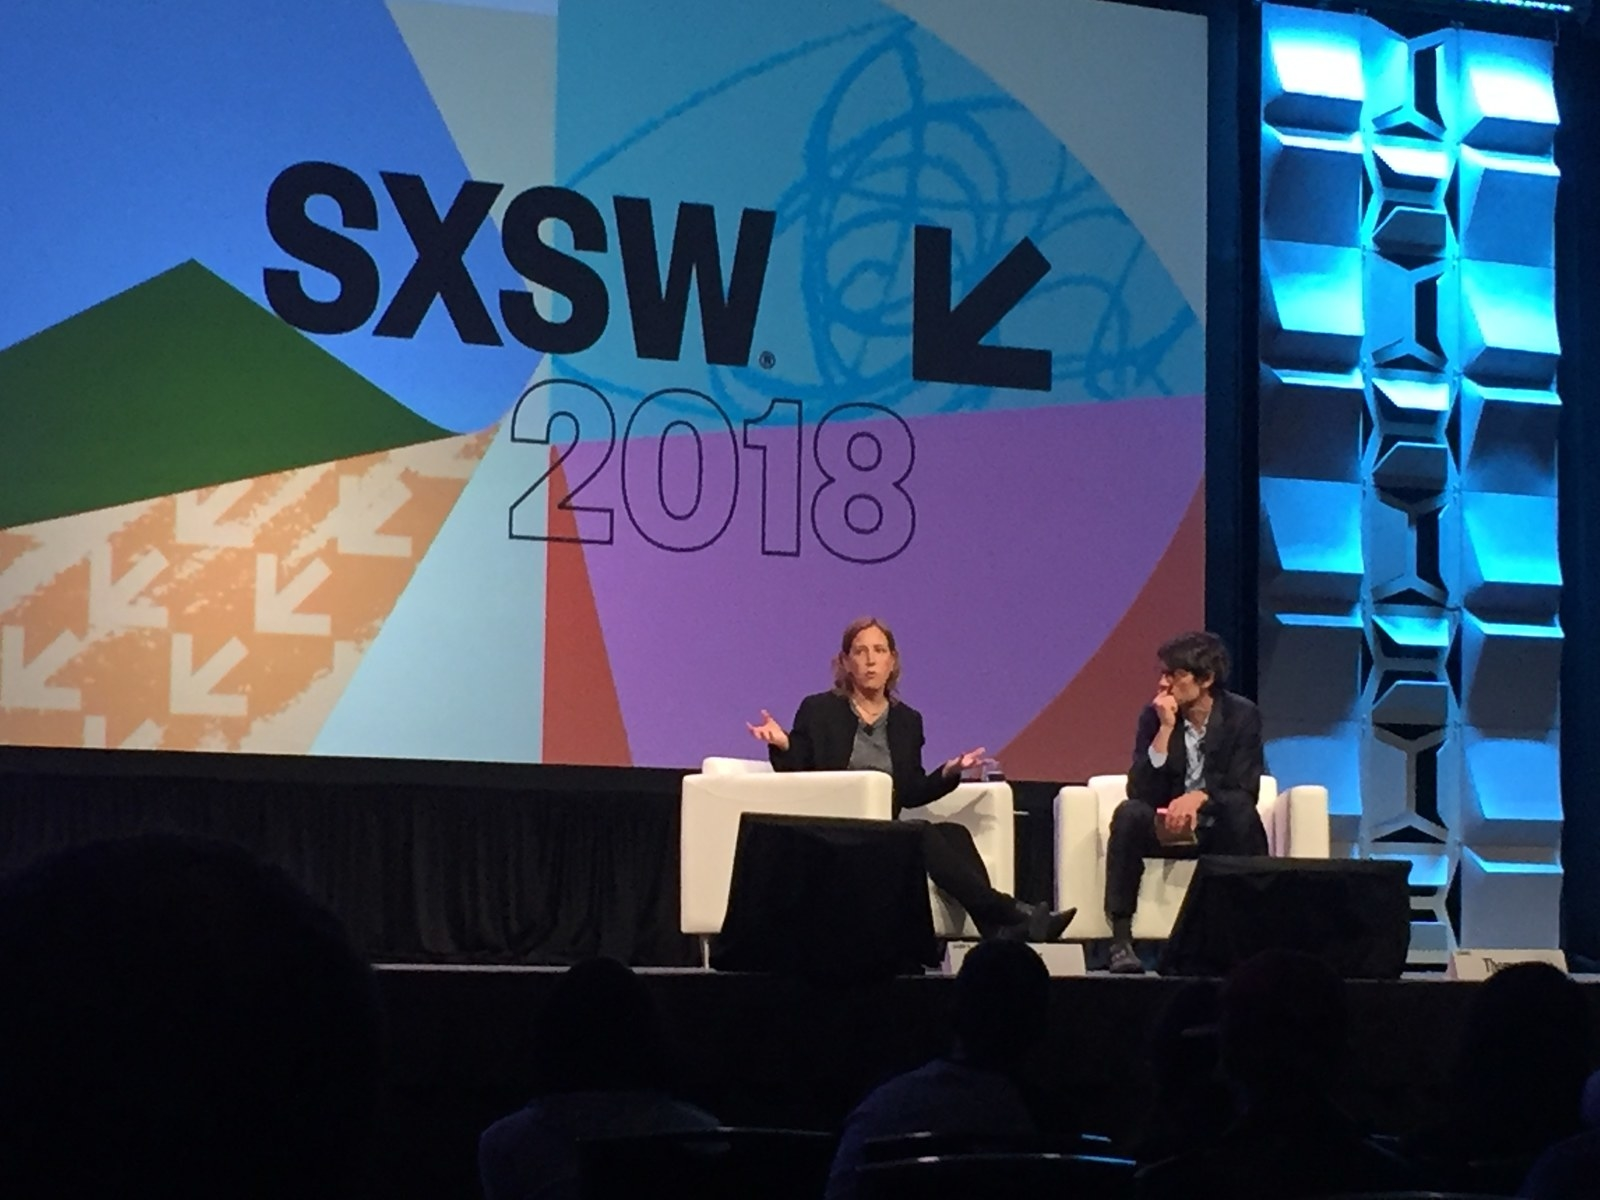 YouTube CEO Susan Wojcicki on stage at the South by Southwest conference Tuesday.